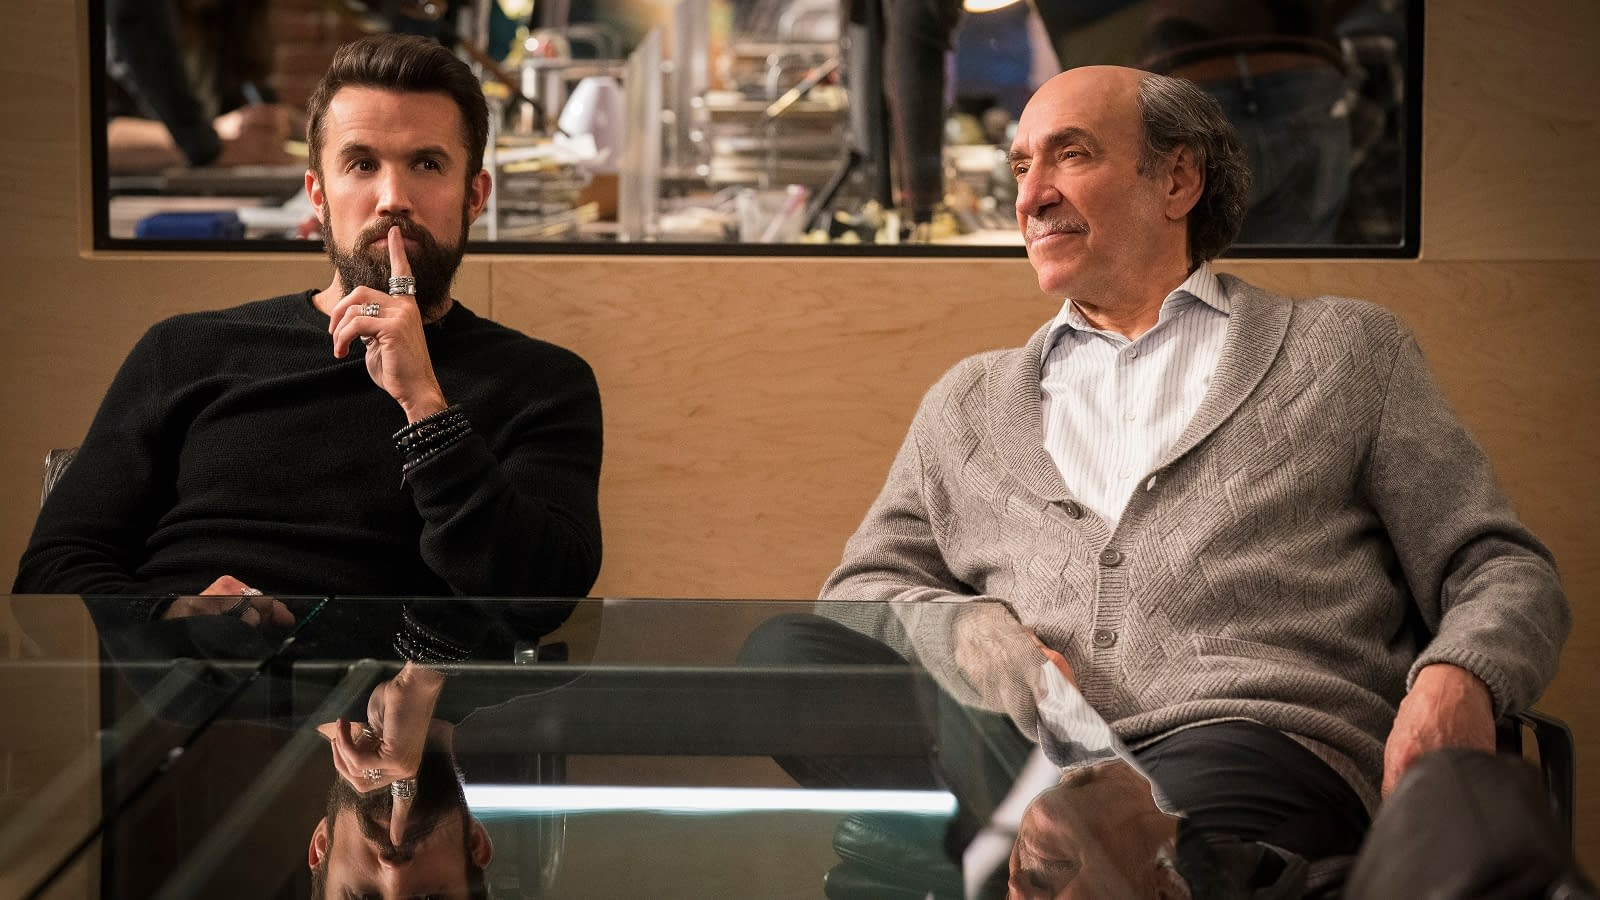 Mythic Quest - Rob McElhenney and F. Murray Abraham